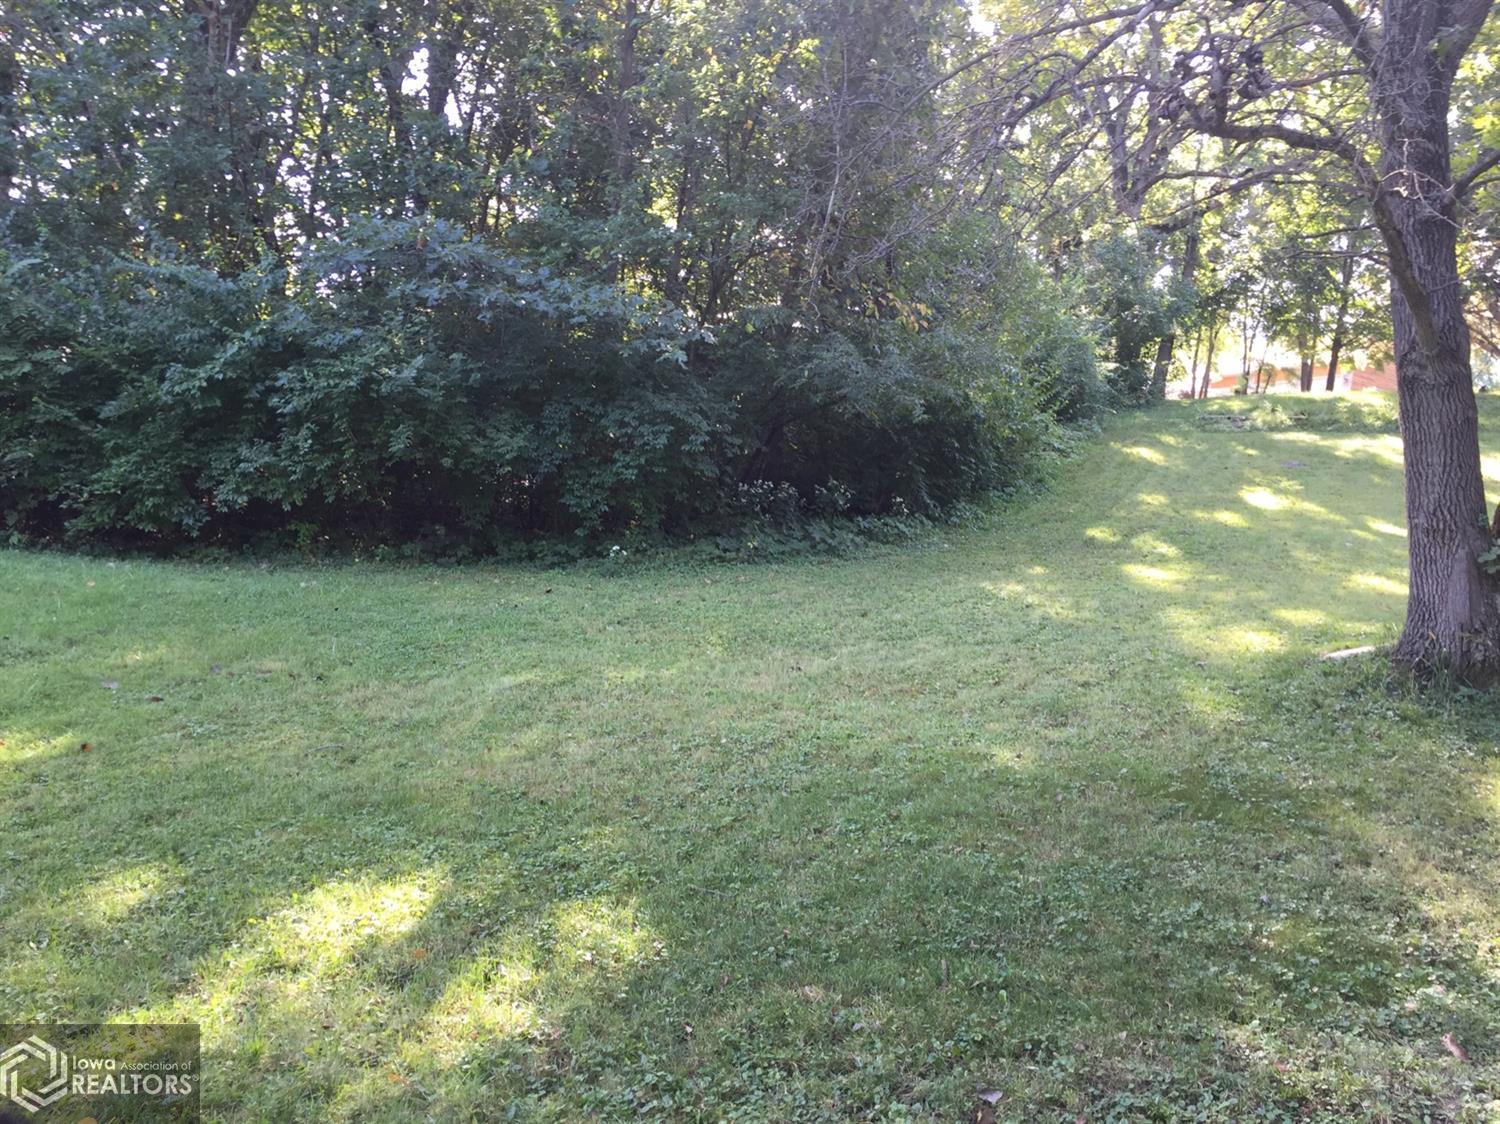 0 Fore Seasons Dr., Oakland Acres, Iowa 50112, ,Lots & Land,For Sale,Fore Seasons Dr.,5469492